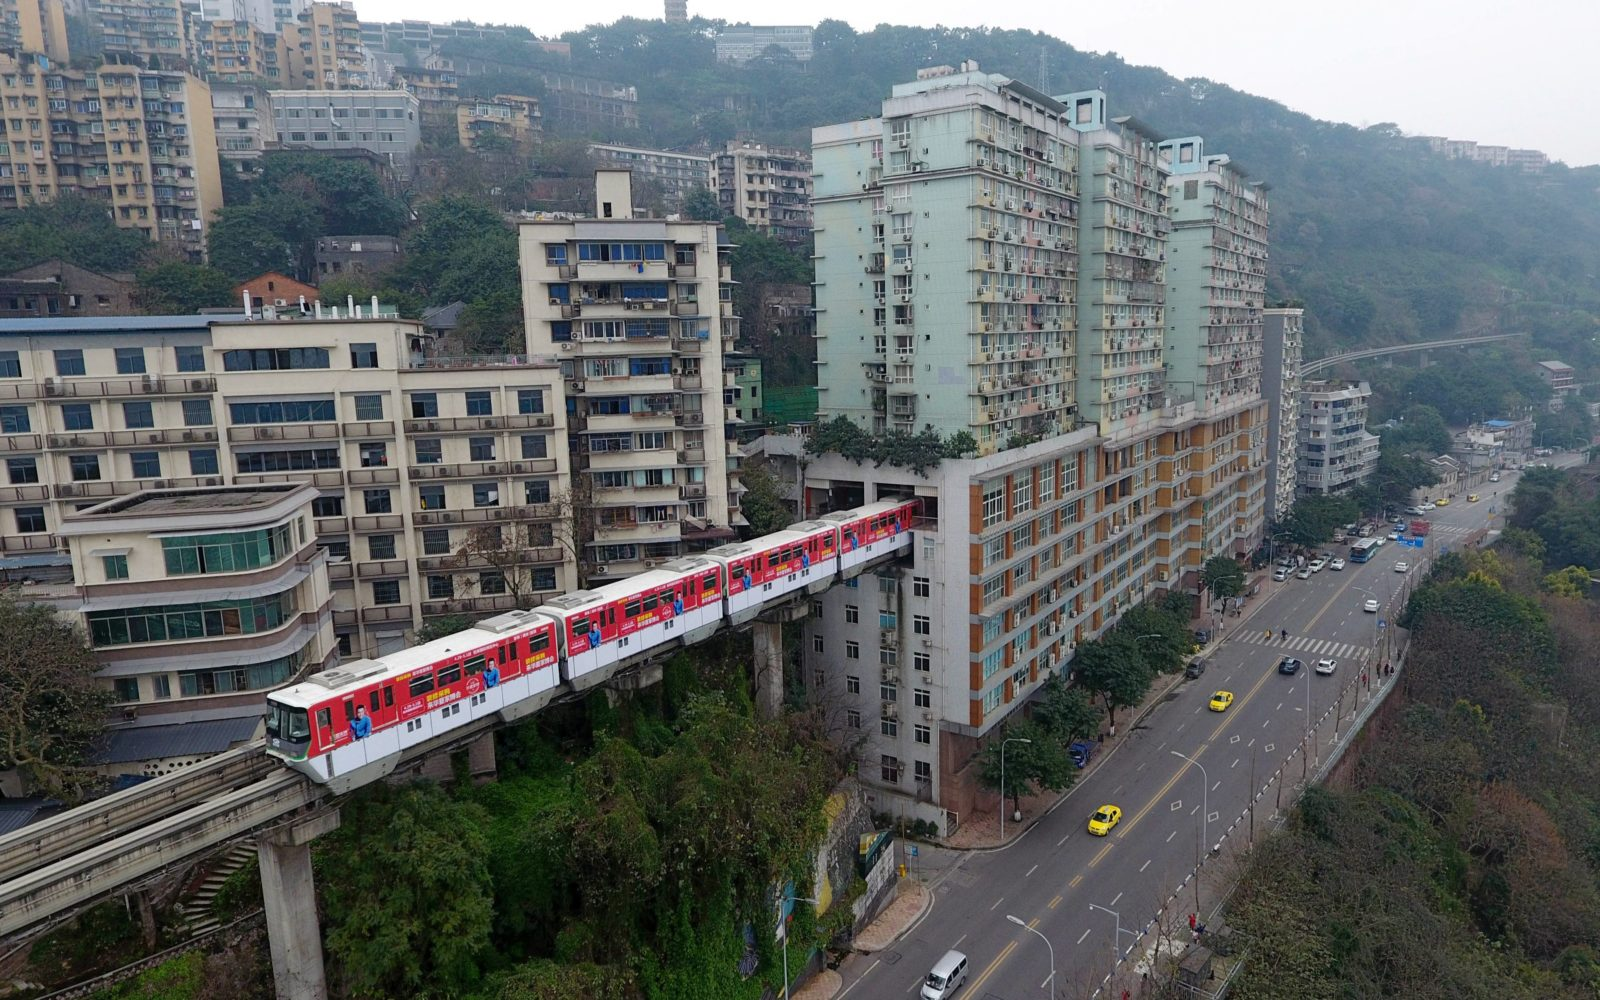 Train through apartments